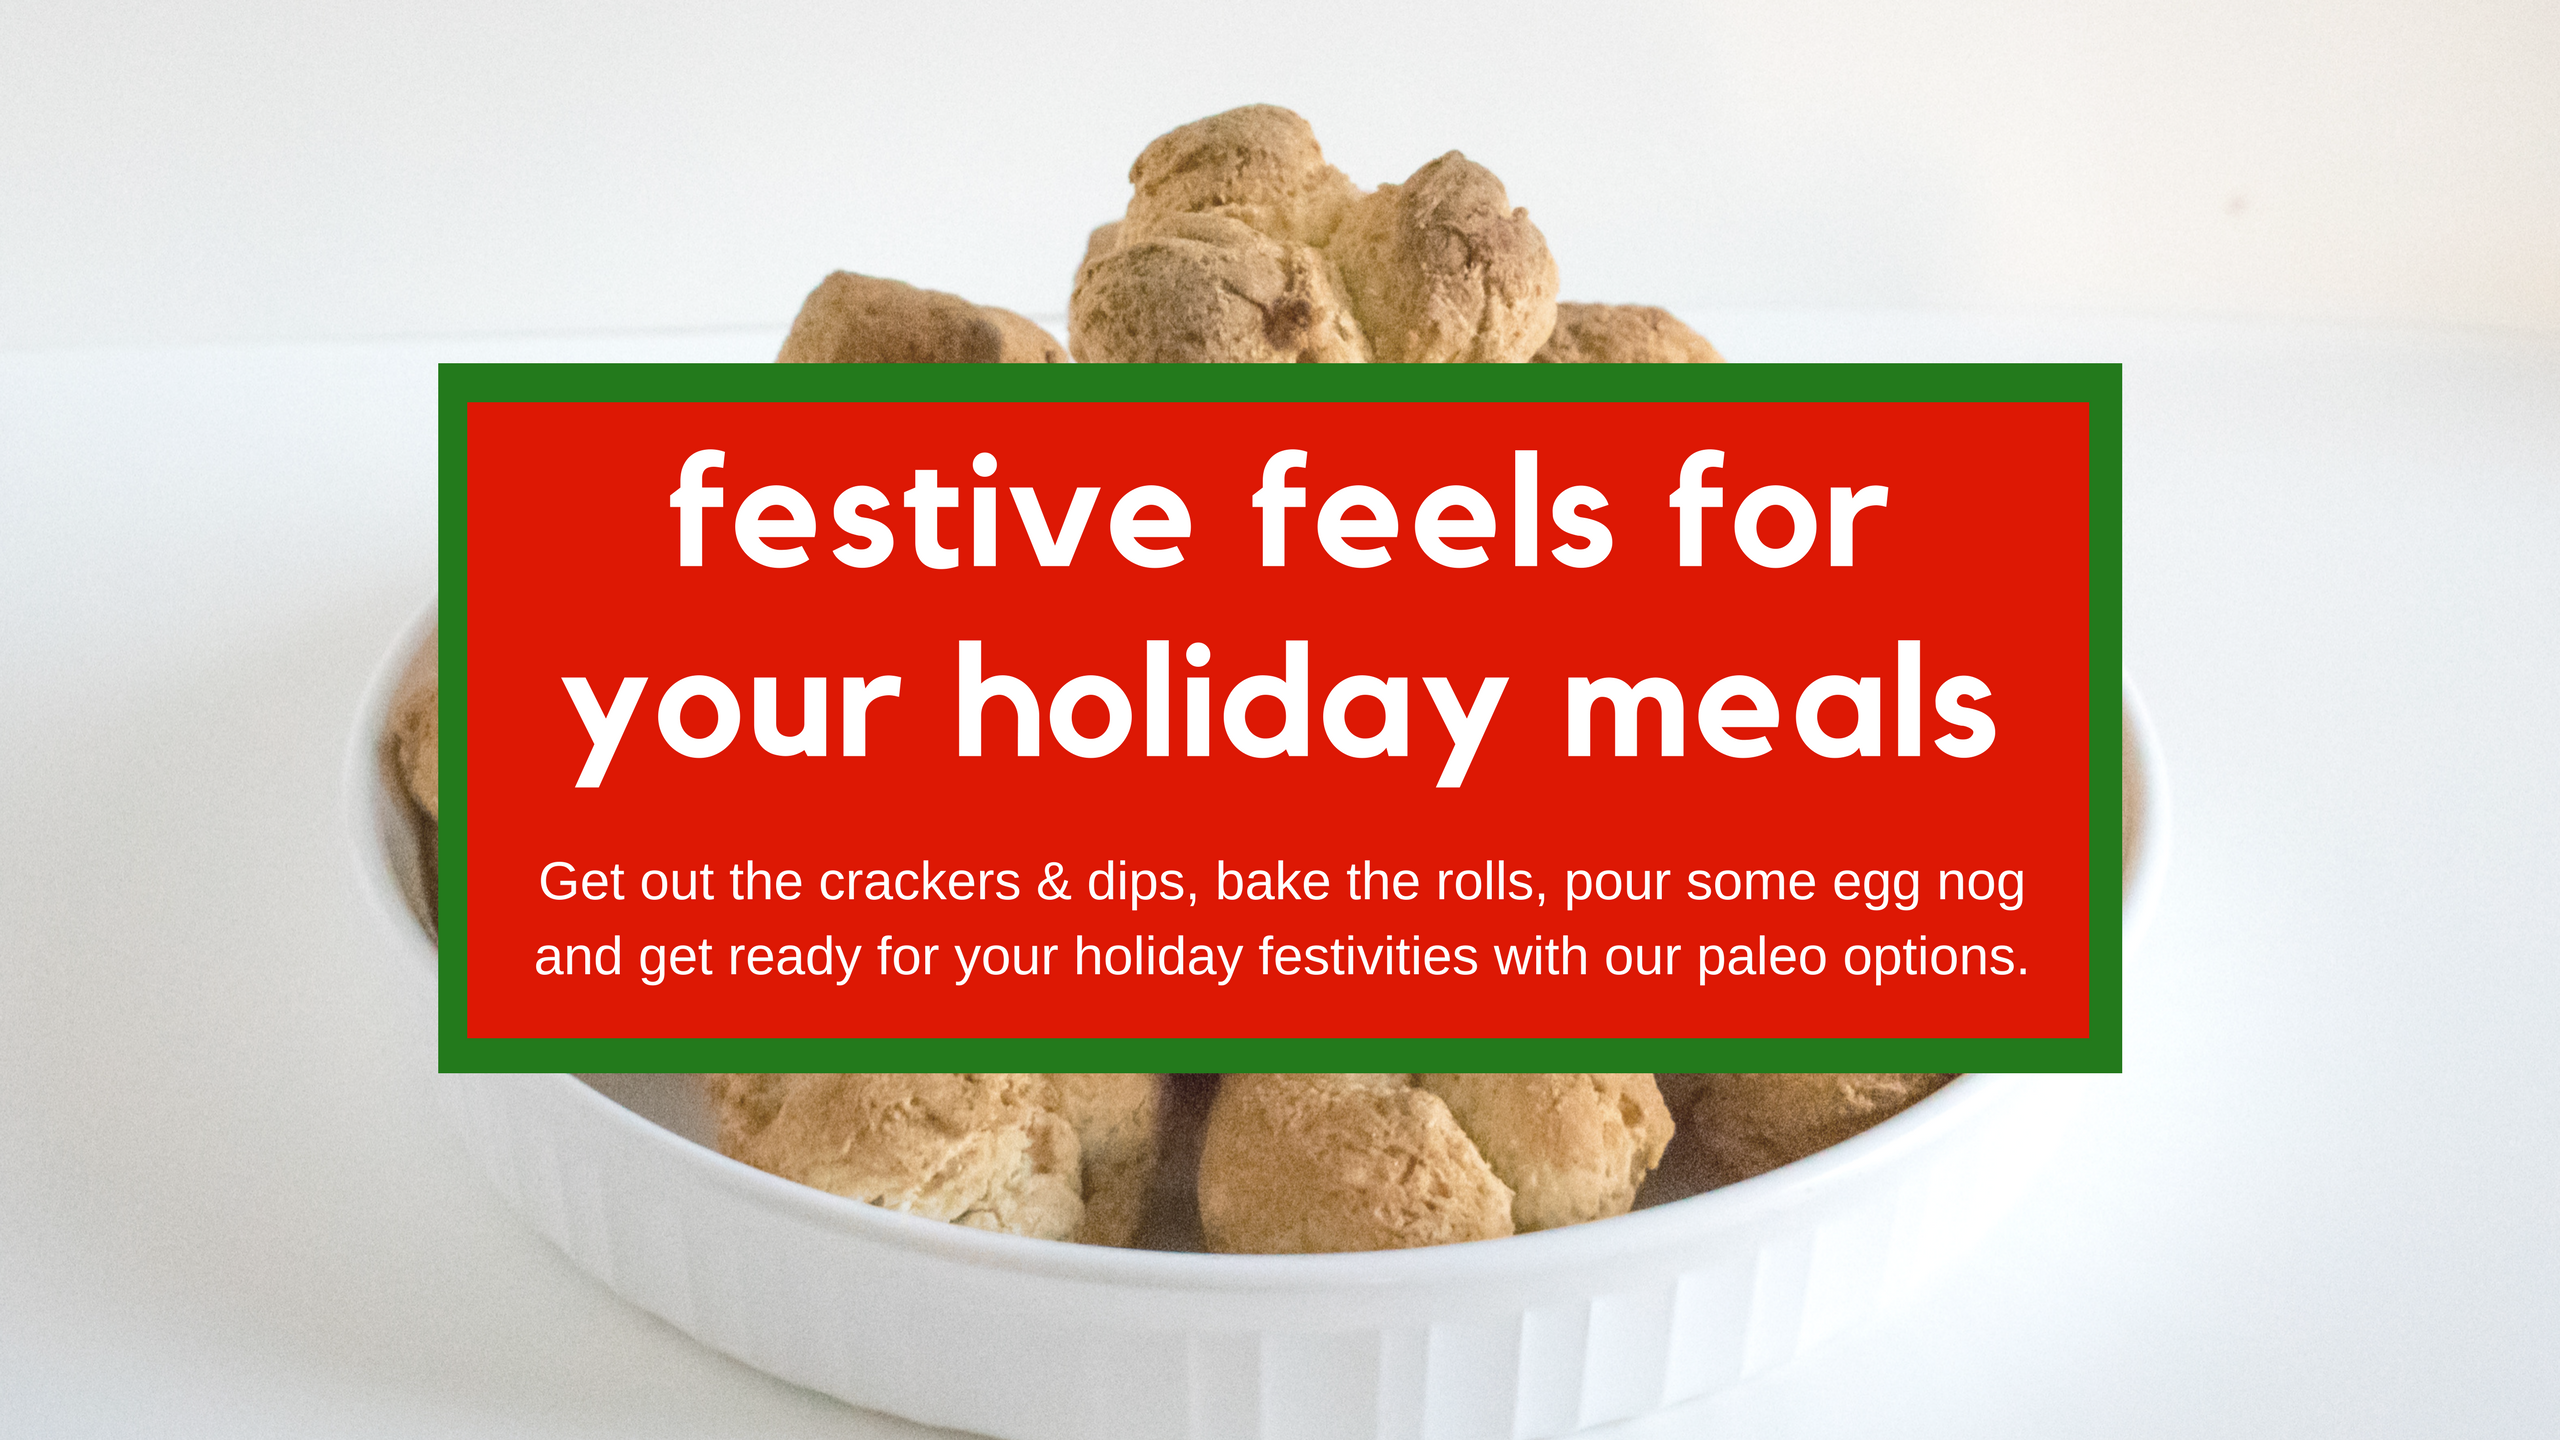 festive feels with your holiday meals